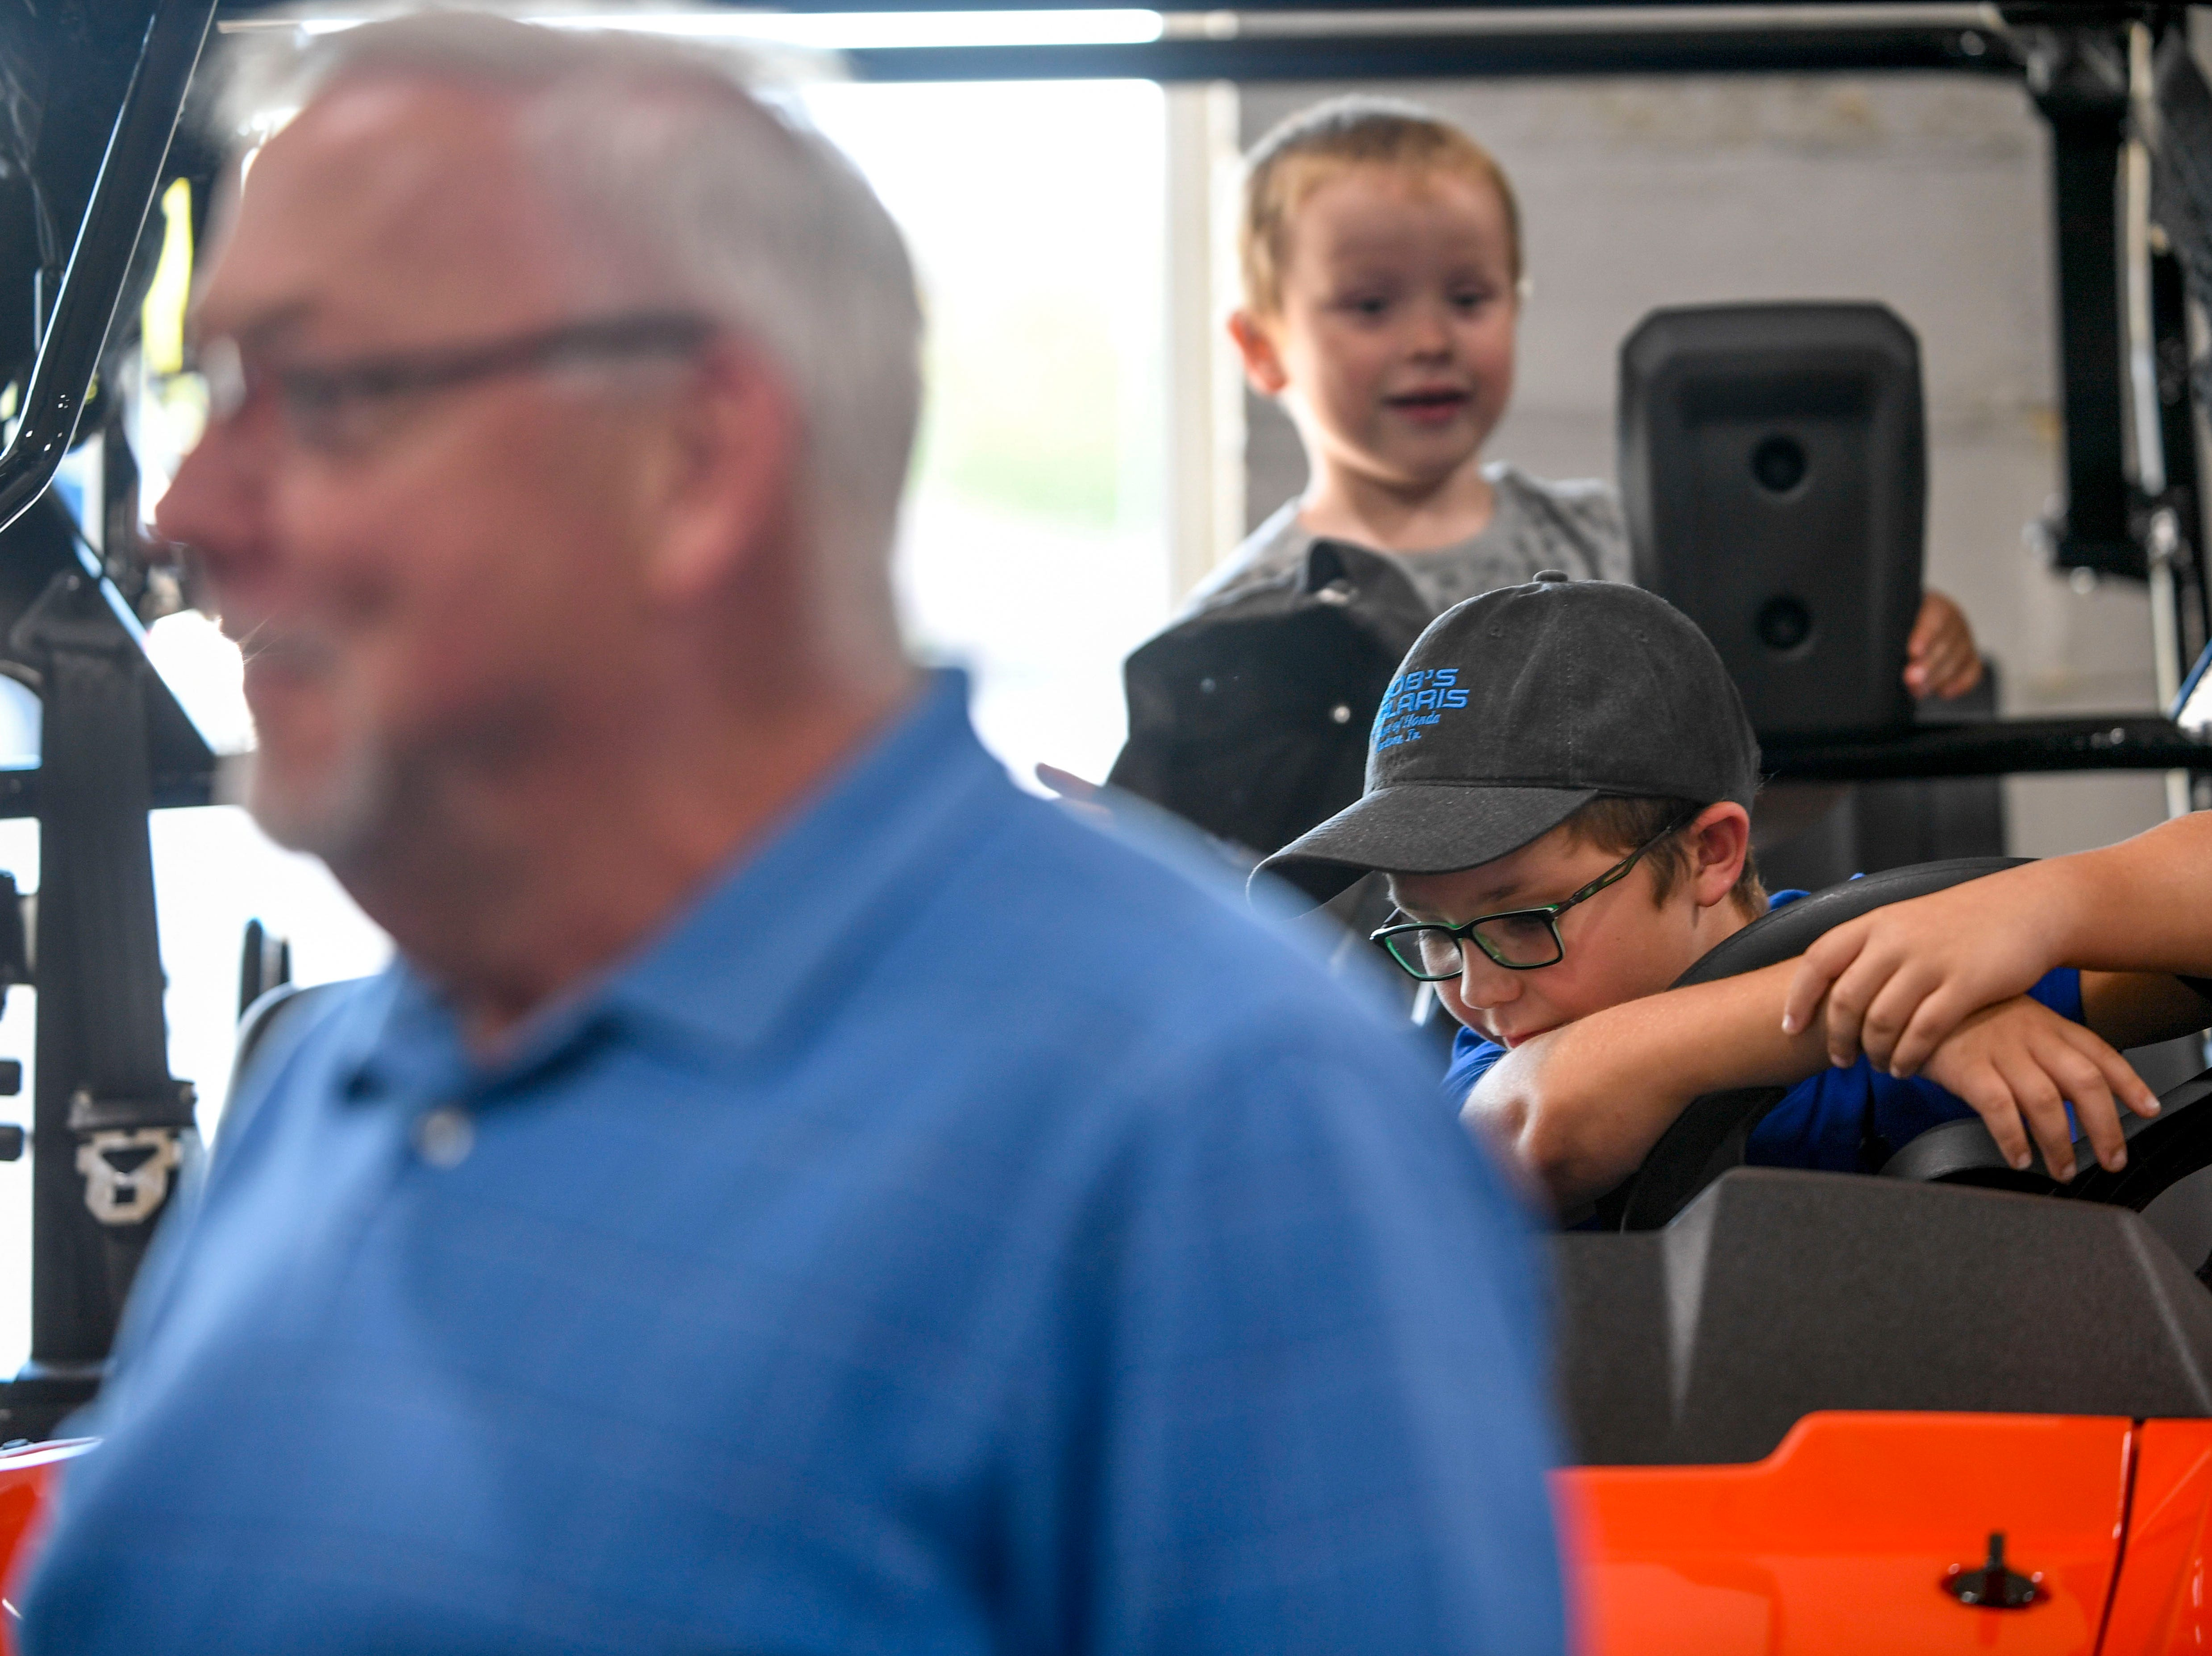 Bradley Coleman, 8, right, and his brother John Patrick Coleman, 4, background, explore other ATVs while their grandfather speaks to owners at Bob's House of Honda in Jackson, Tenn., on Thursday, Sept. 20, 2018.